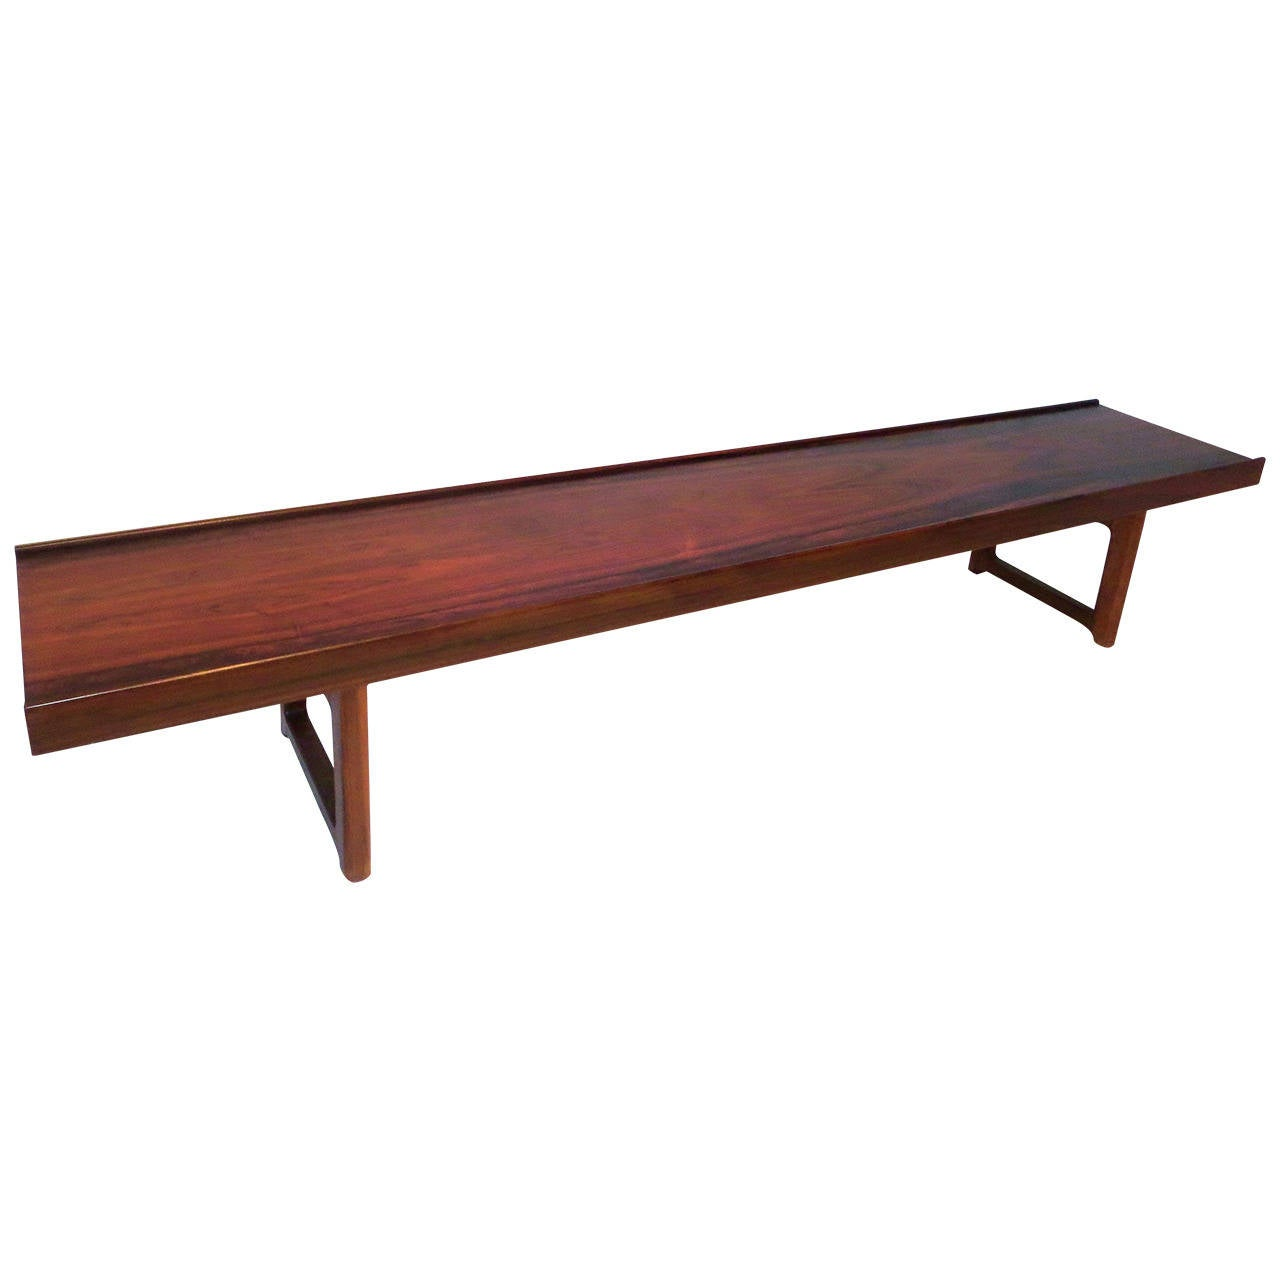 Low Tables For Sale Long Low Profile Bench Or Coffee Table In Rosewood